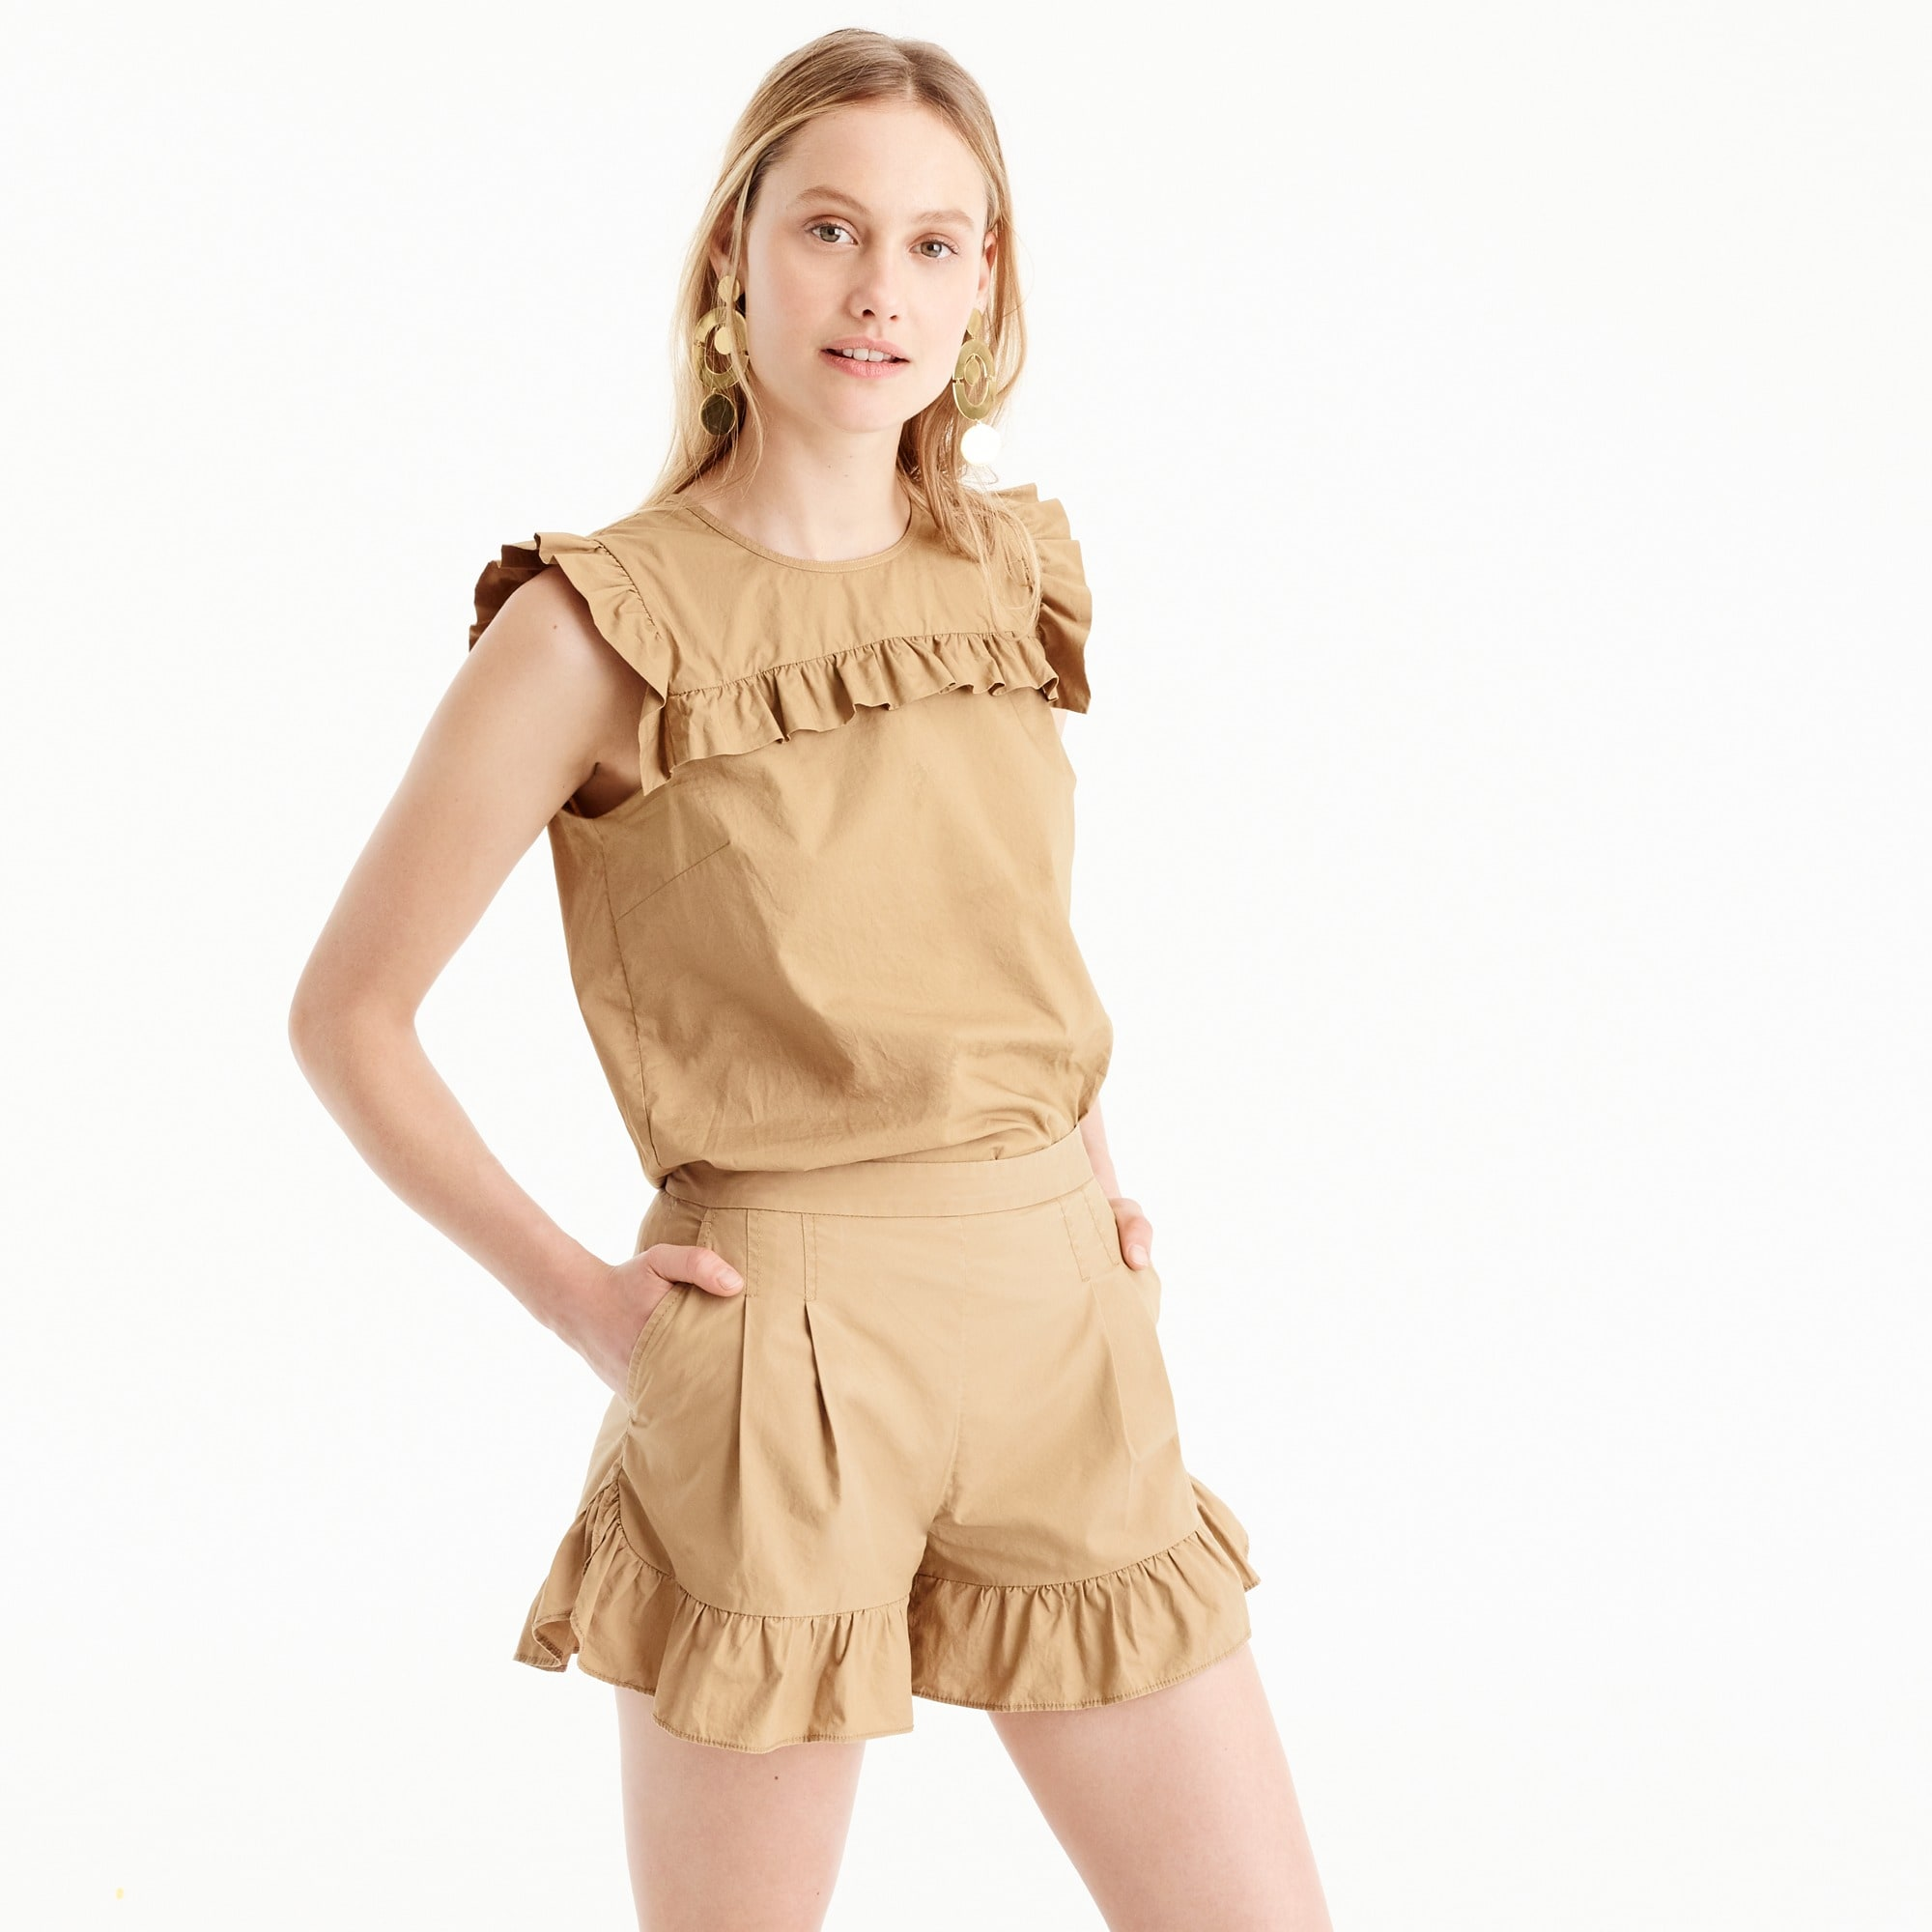 ruffle khaki short : women novelty